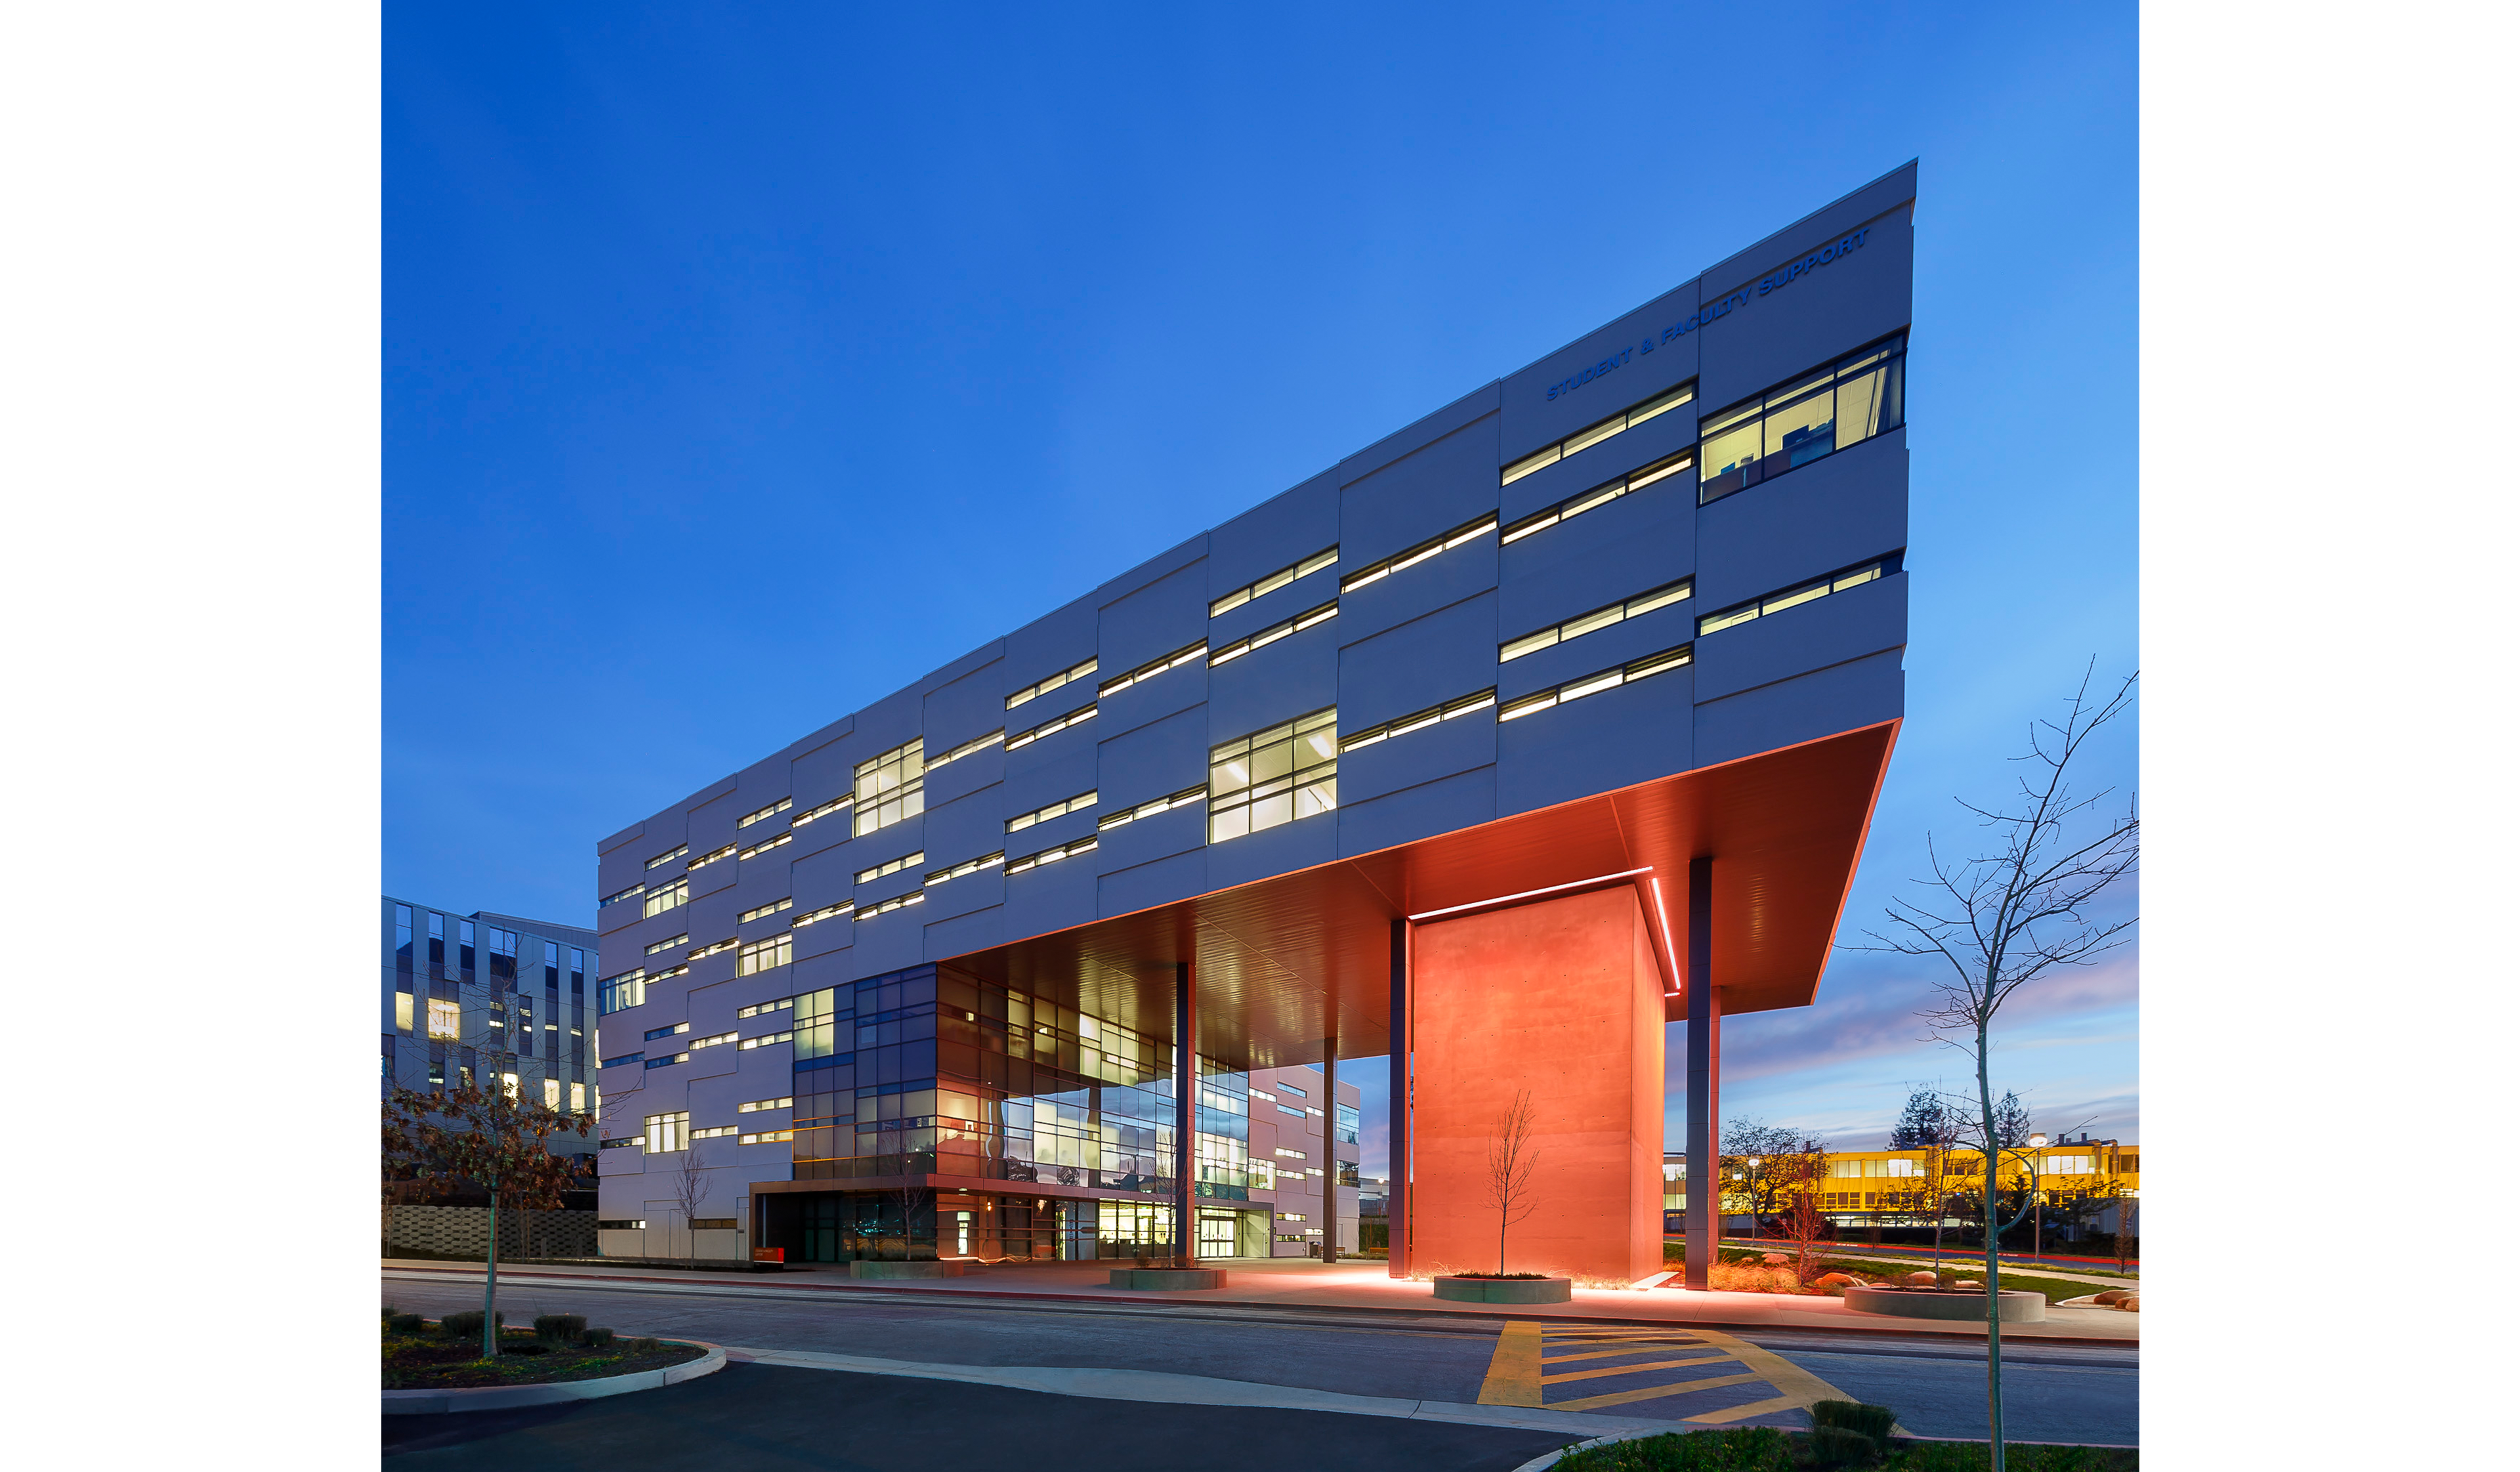 Csueb Student And Faculty Support Center1